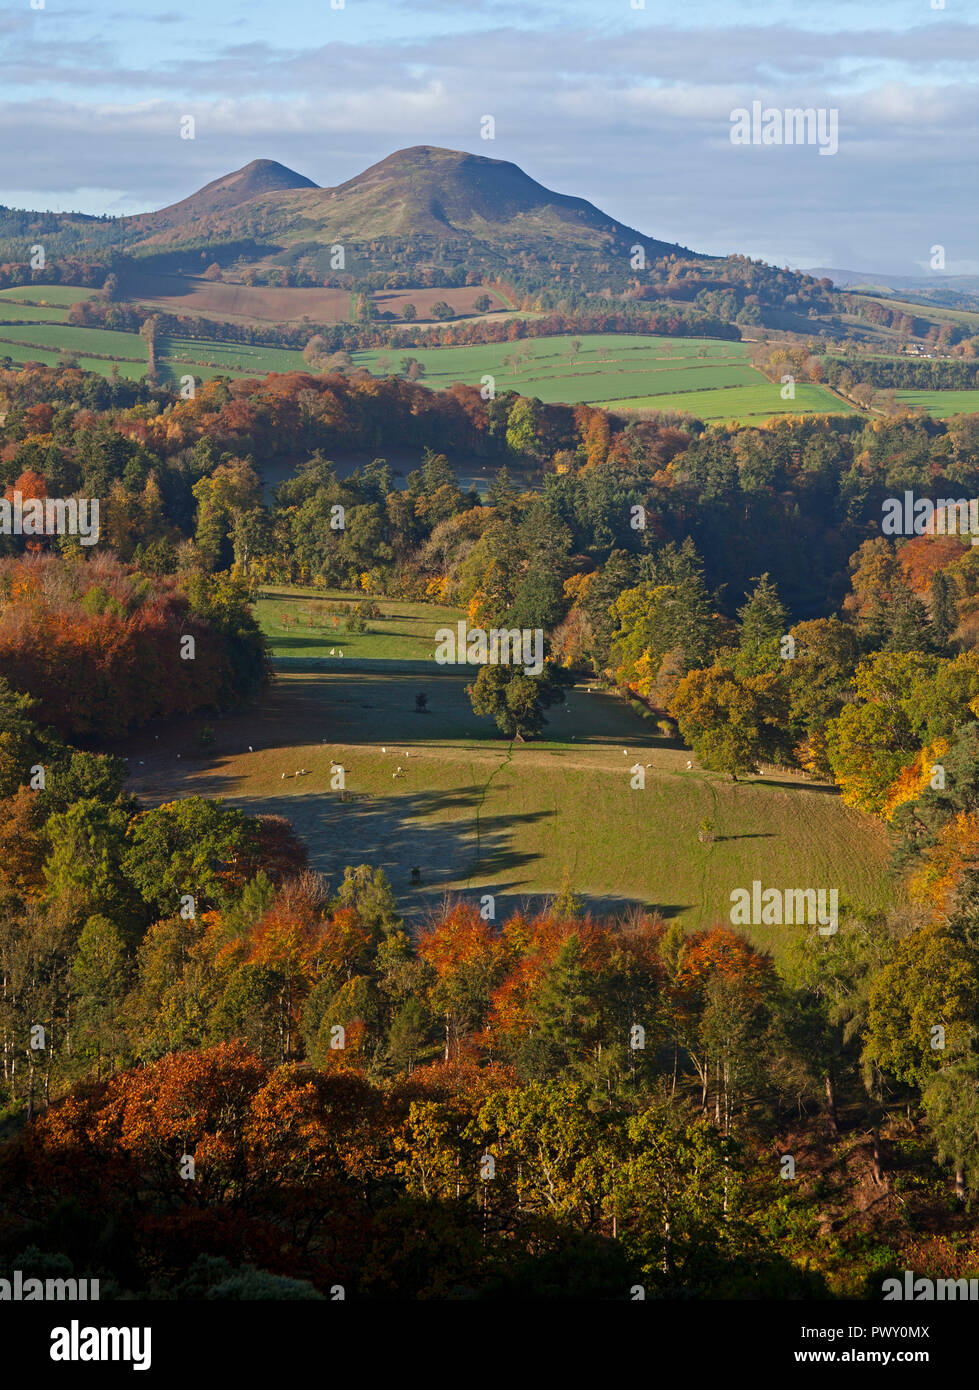 Scott's View, Melrose, Scotland, UK. 18 October 2018. UK Weather, glorious sunshine highlighting the  autumnal foliage looking towards the Eildon Hills after a frosty start in Scottish Borders, temperature of 7 degrees. - Stock Image